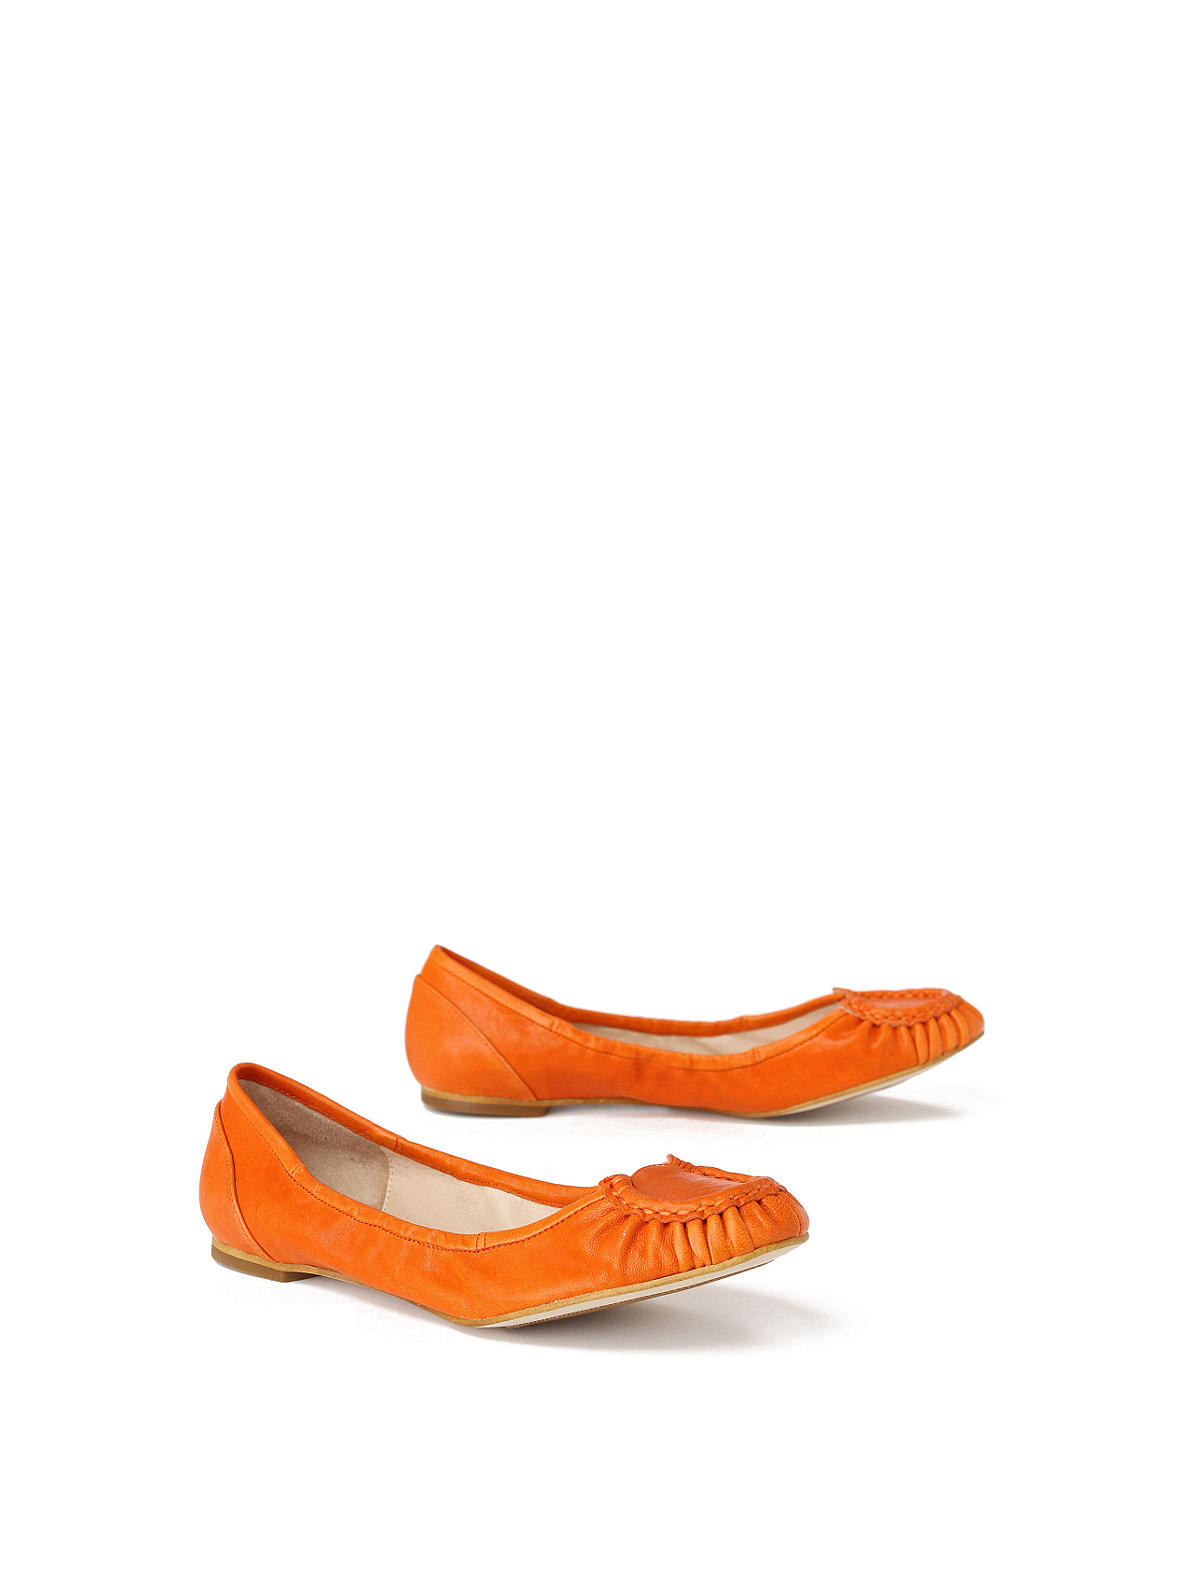 Lucky Horseshoe Flats - Anthropologie.com :  puckered flats gathered shoes